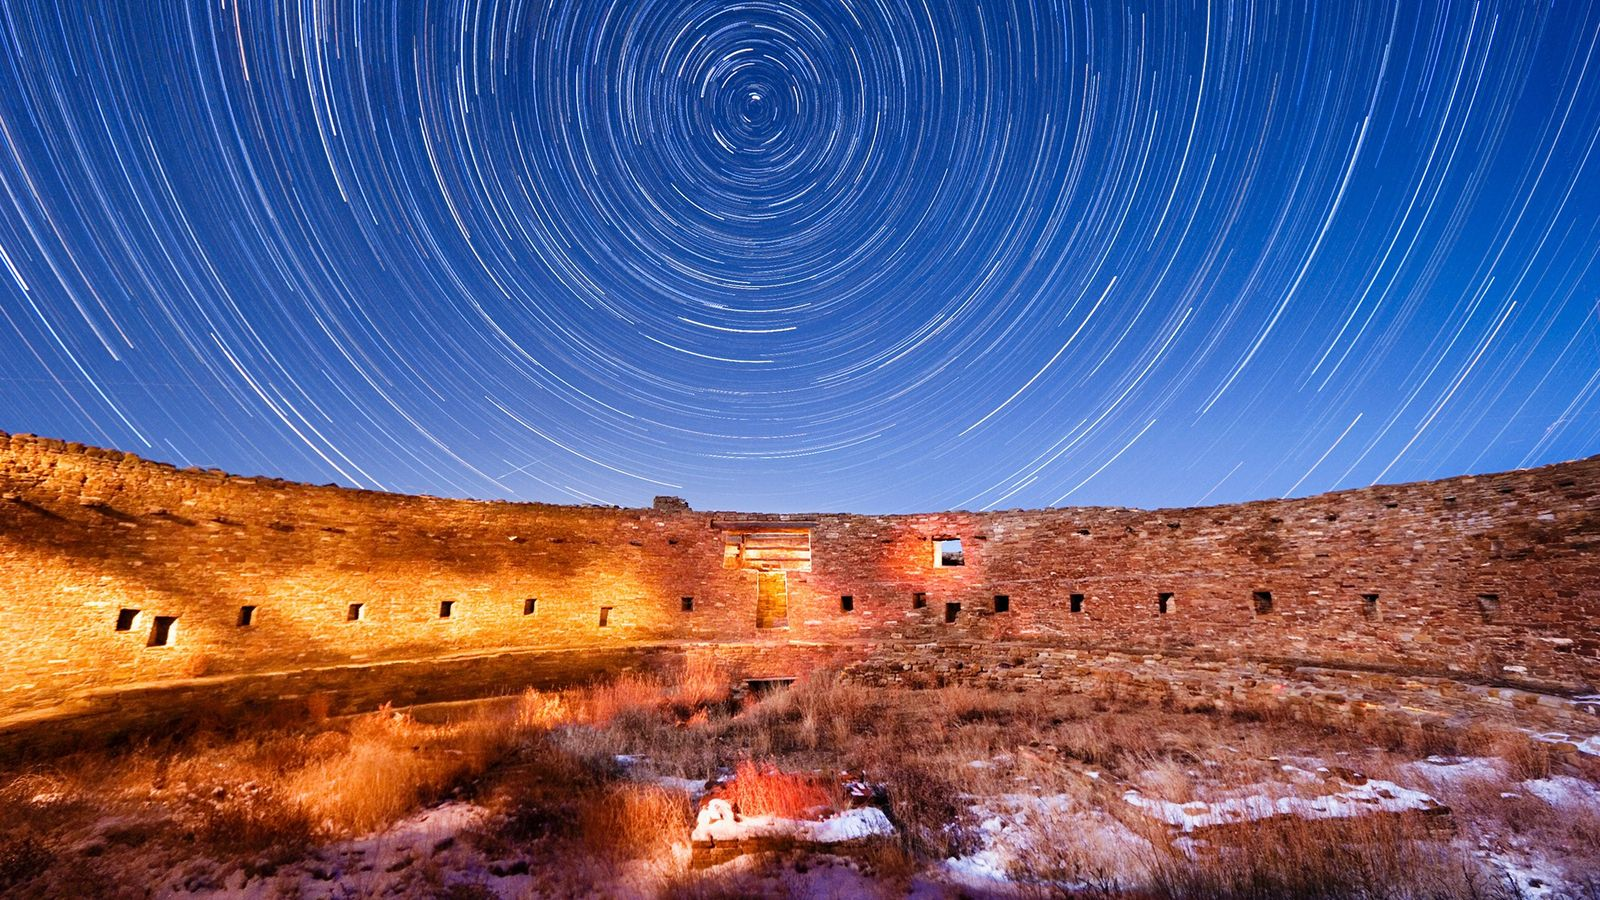 Stars whirl in time-lapse above Casa Rinconada, an Ancestral Puebloan site in Chaco Canyon.